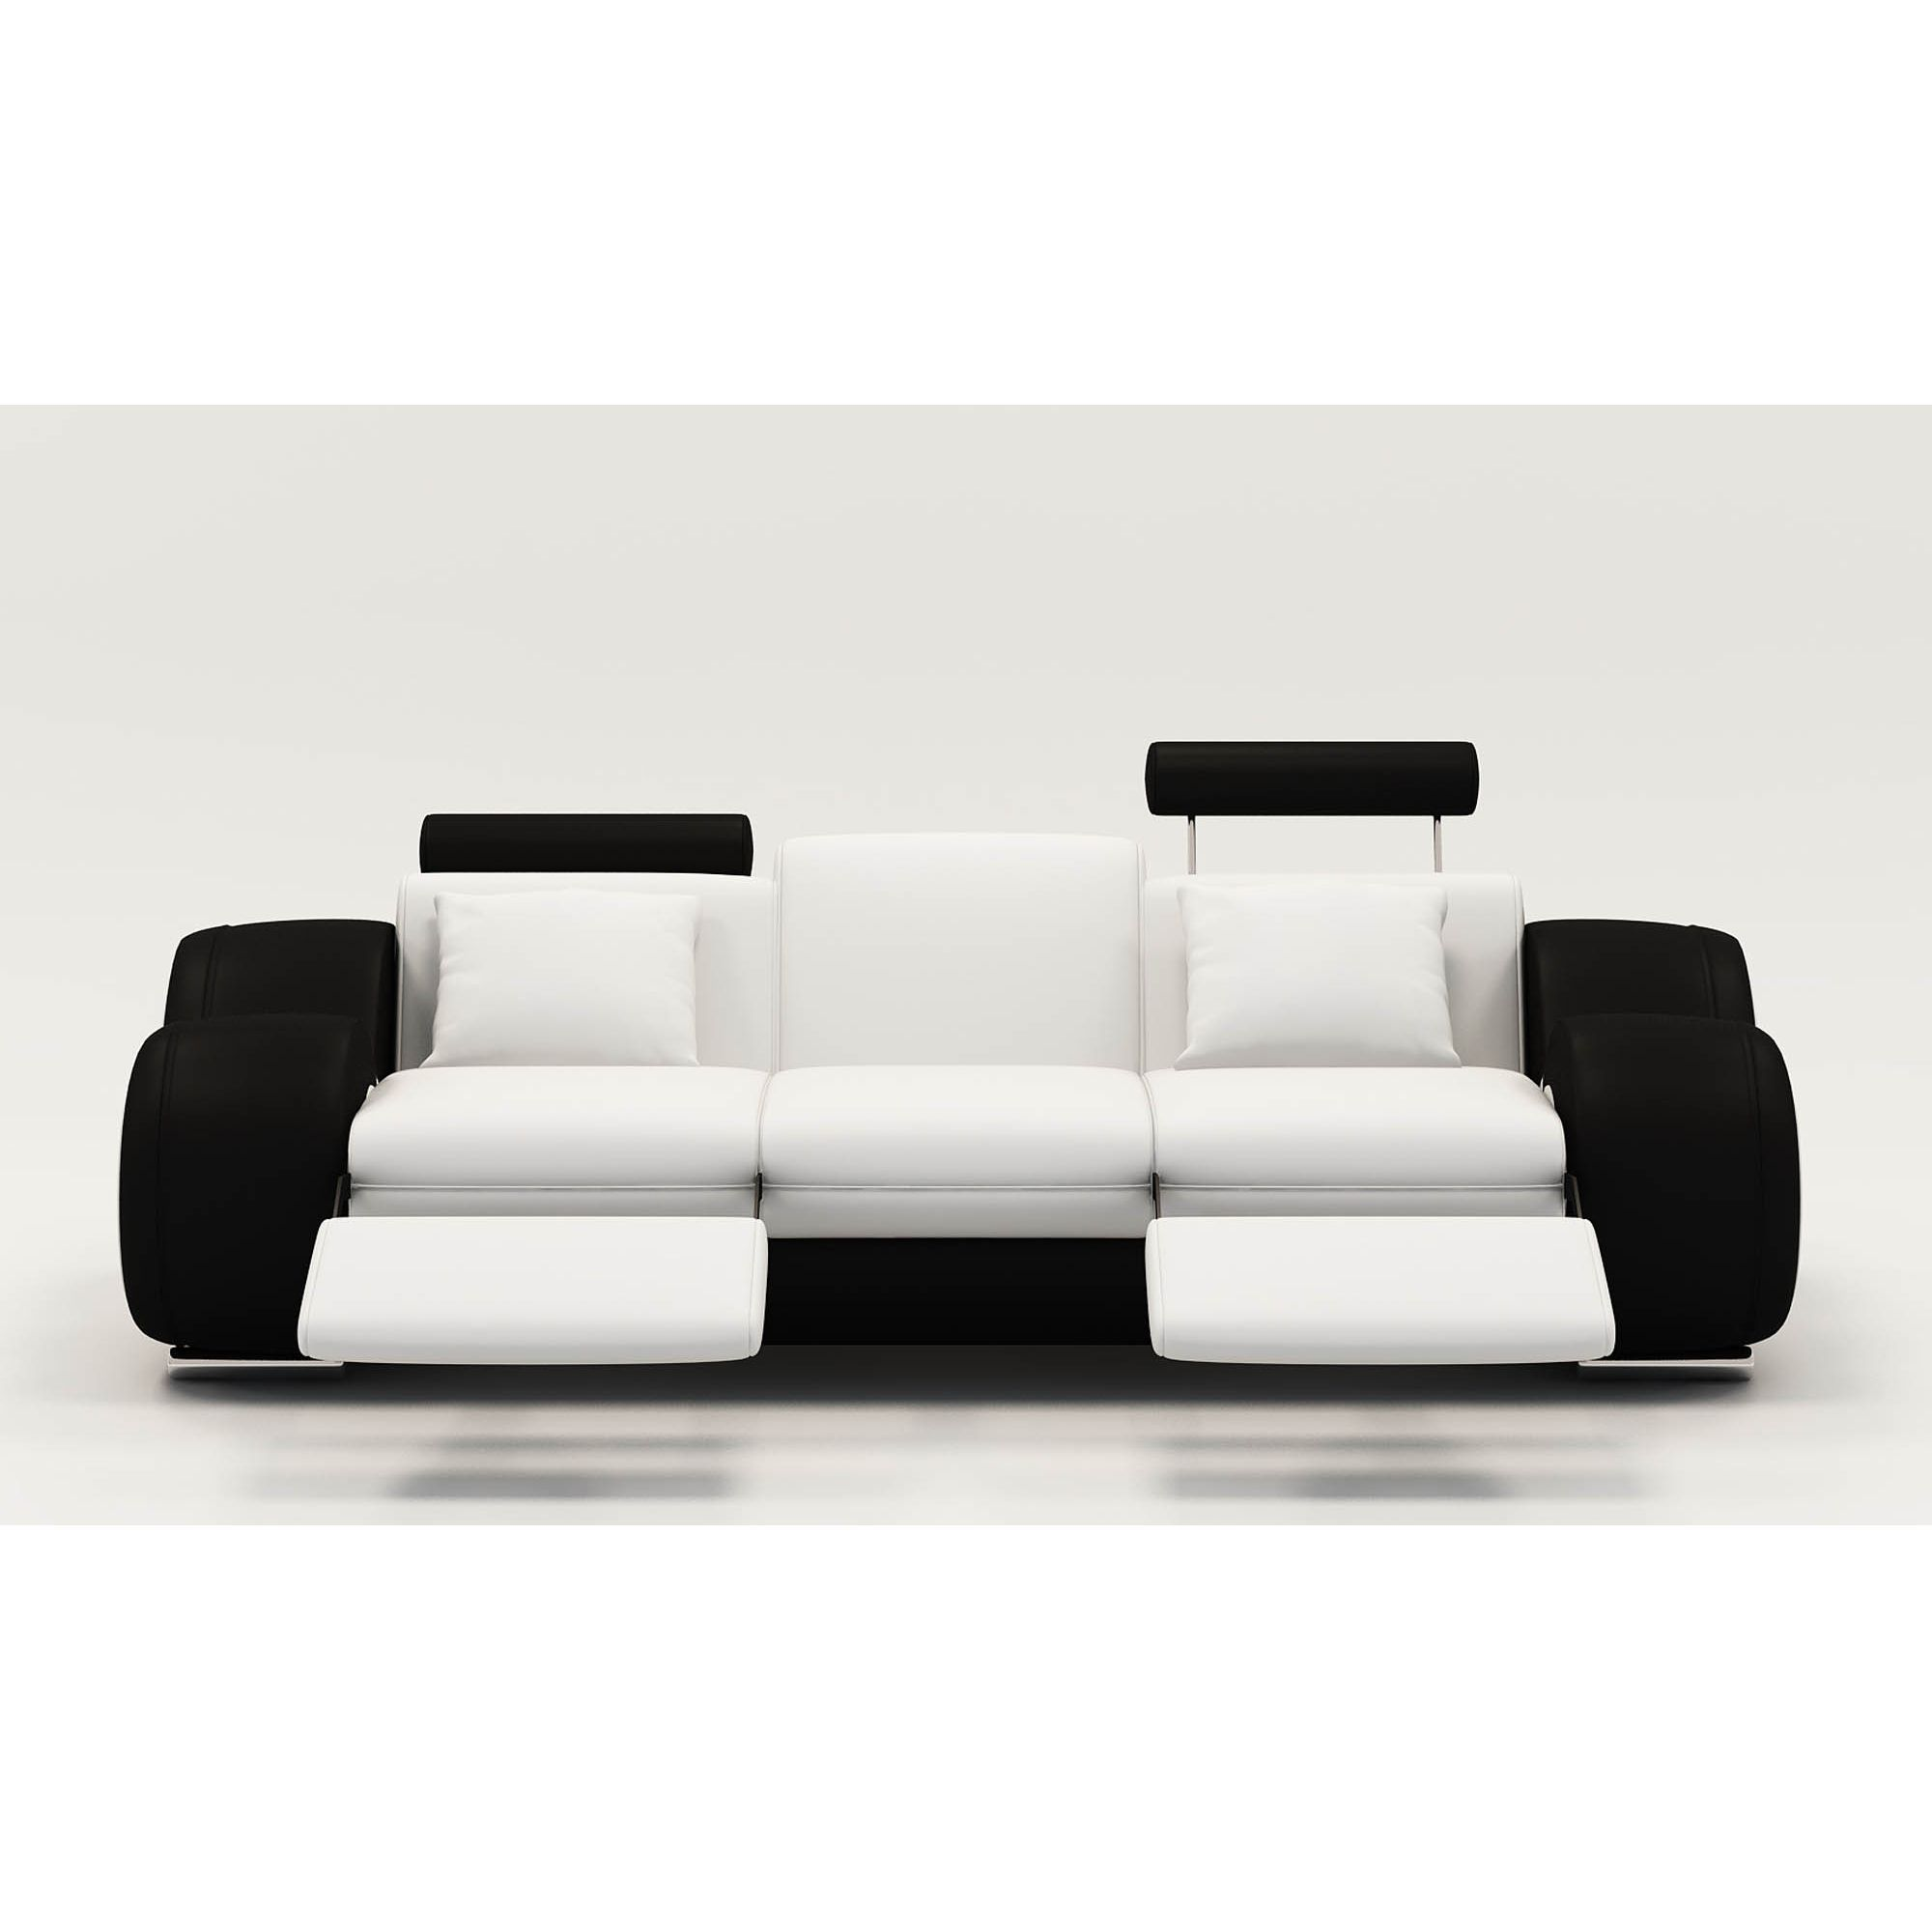 Deco in paris canape design 3 places cuir blanc et noir for Canape cuir blanc design